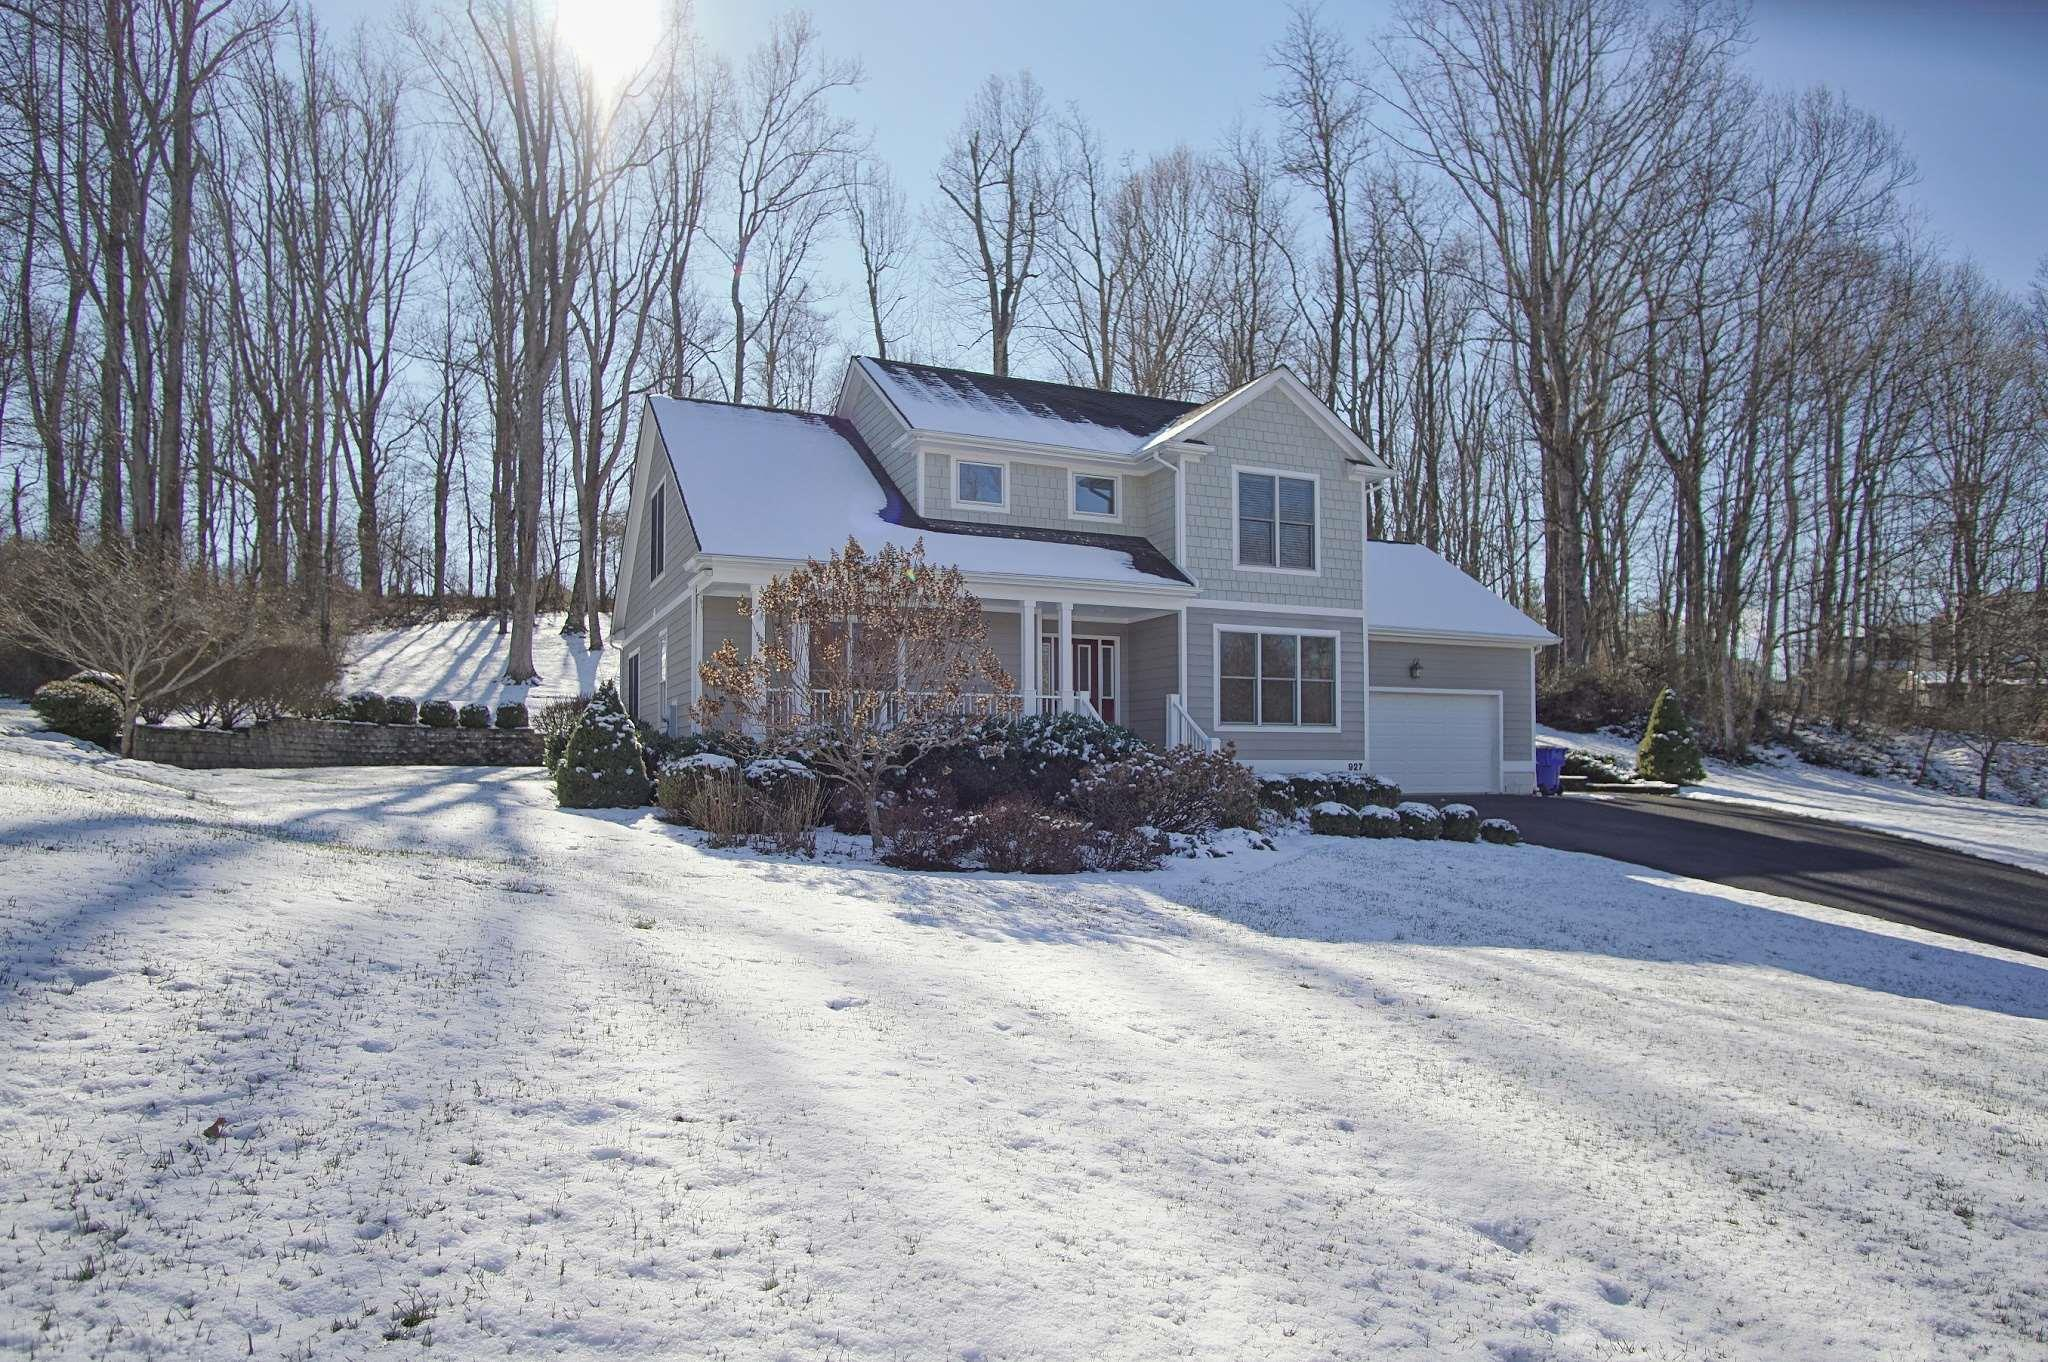 Bright and spacious 4Br, 2.5 bath home on over an acre on a tree lined street just minutes from VT Campus.  Main level features a spacious kitchen, family room, guest room or office, formal dining room and inviting foyer all with new paint and newly refinished hardwood floors.  Two car garage is on the main level convenient to the kitchen.  Upstairs includes a well appointed master suite with two additional bedrooms.  Enjoy the well manicured lot of over 1 acre from both the front porch and the ground level back deck.  The large yard offers room to play and mature trees and landscaping.  Low maintenance exterior finished in Hardi siding, concrete walkway, and paved driveway.